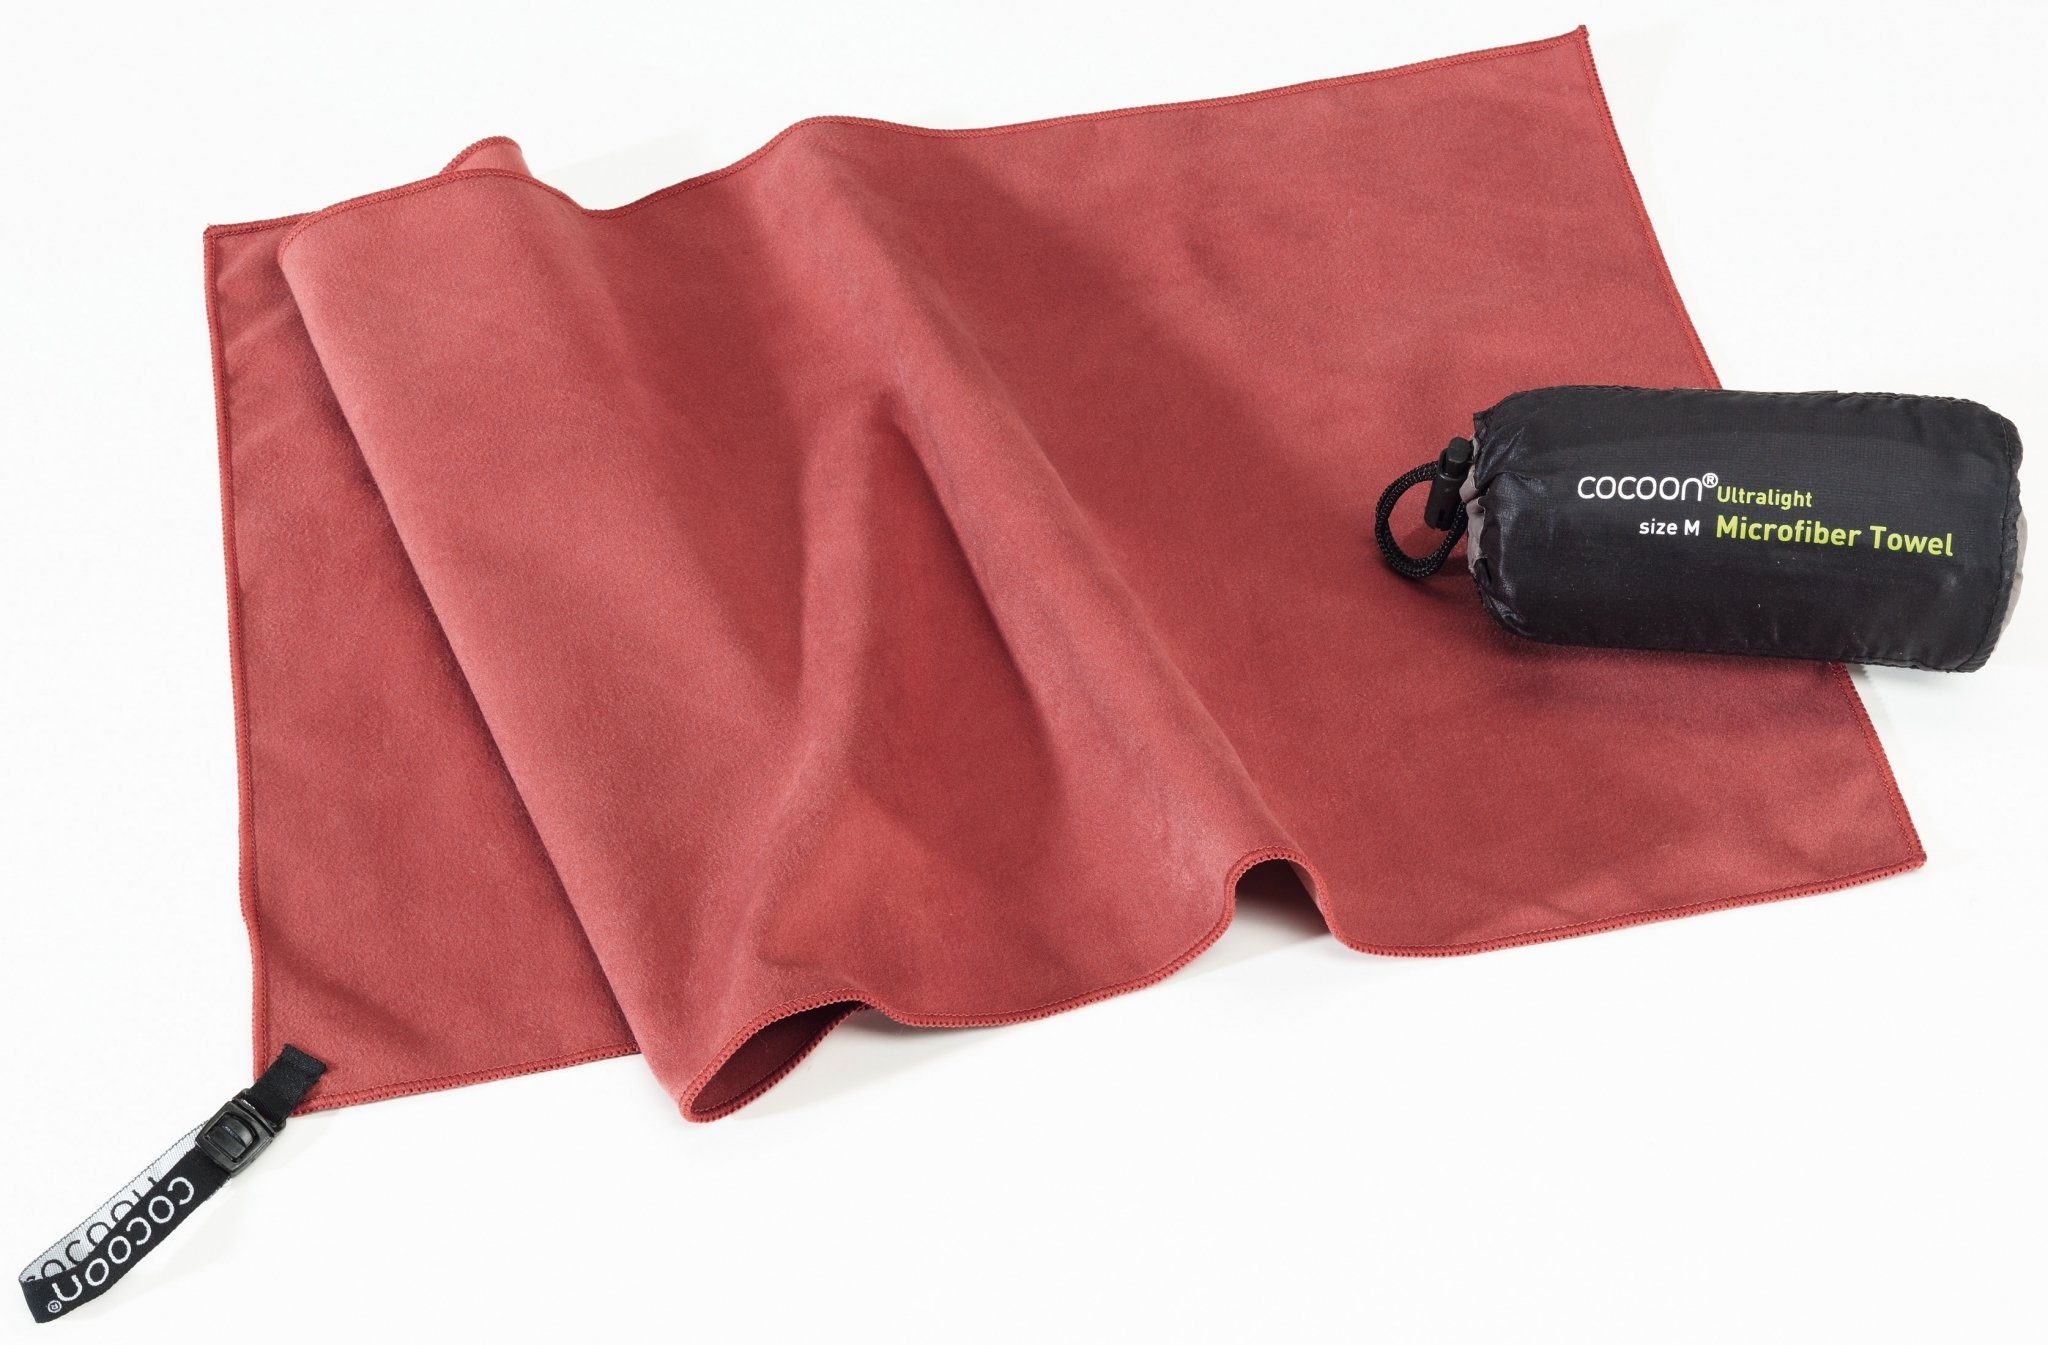 Cocoon Reisehandtuch »Microfiber Towel Ultralight X-Large«